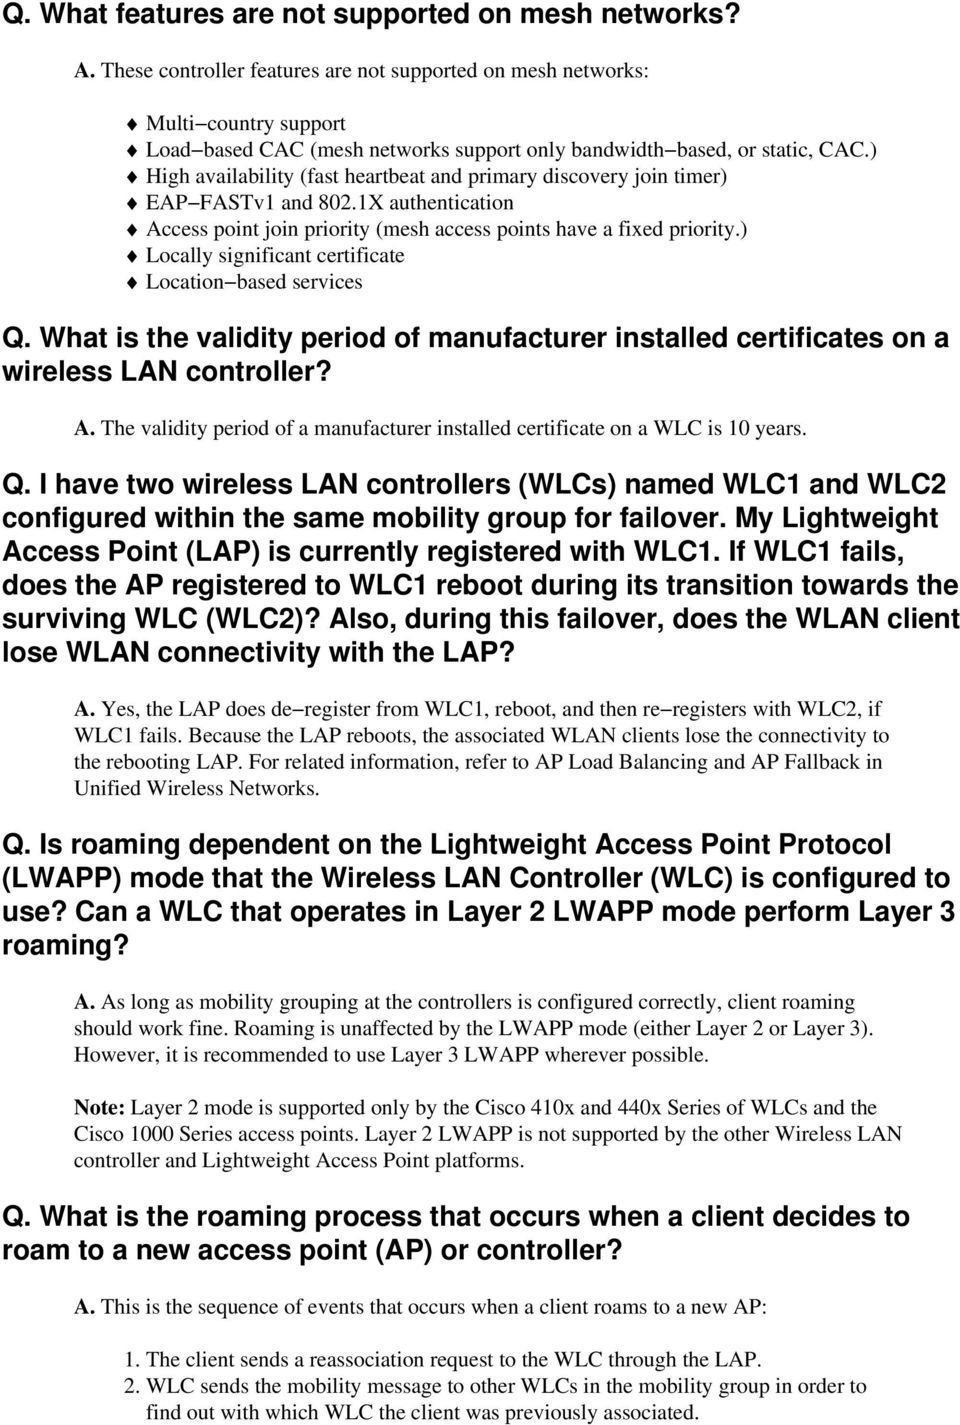 Wireless LAN Controller (WLC) Design and Features FAQ - PDF